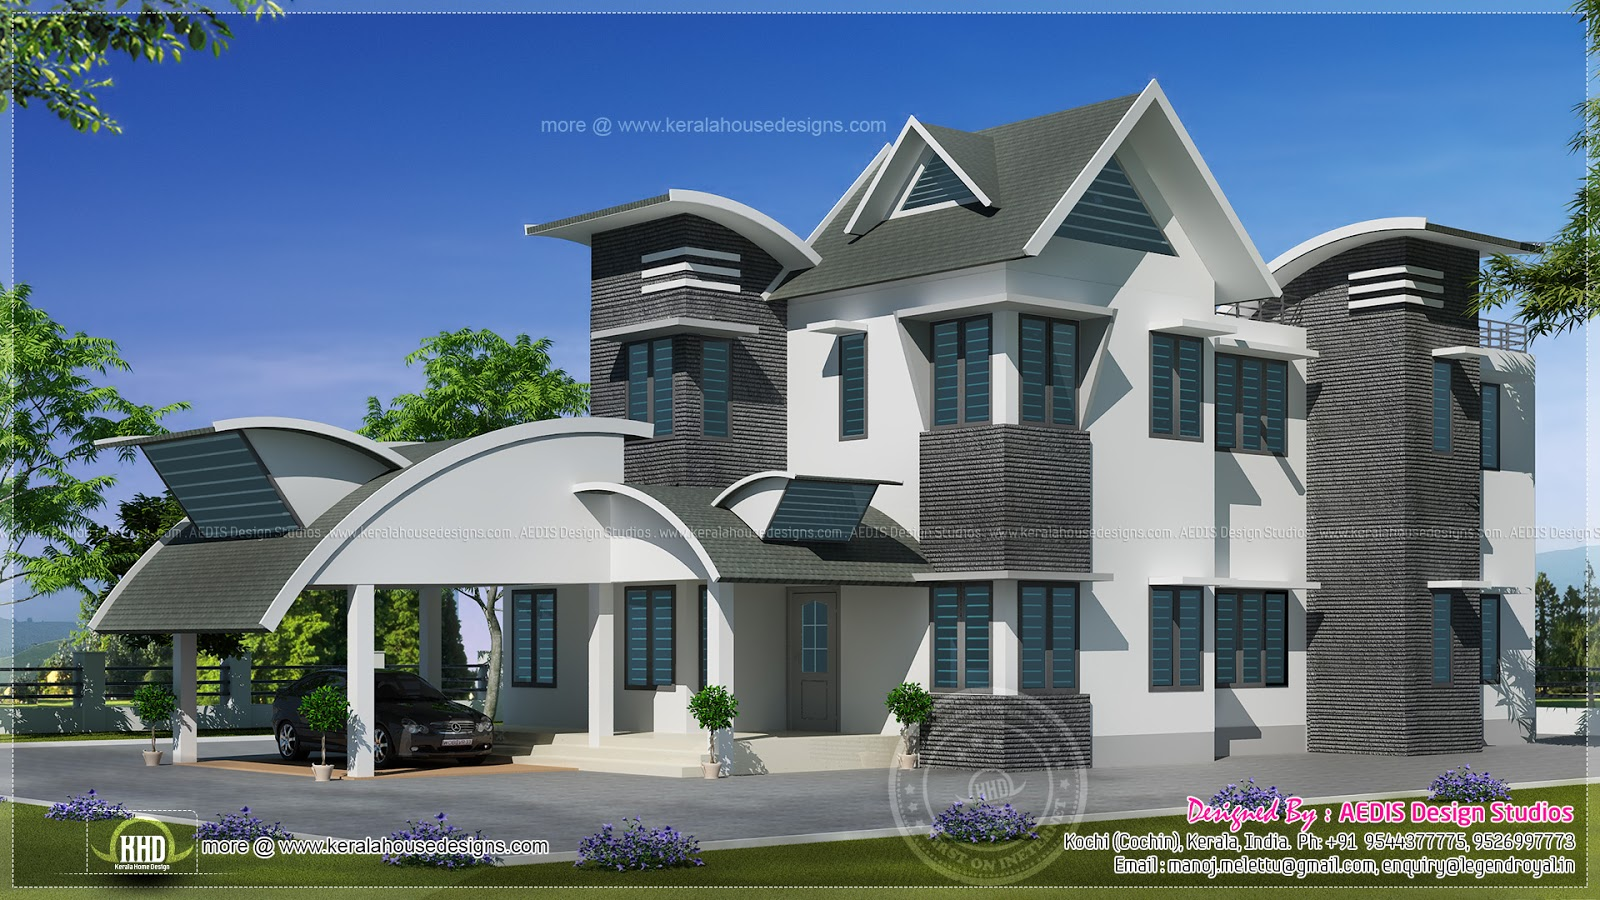 1829 sq-ft unique contemporary home design | Home Kerala Plans